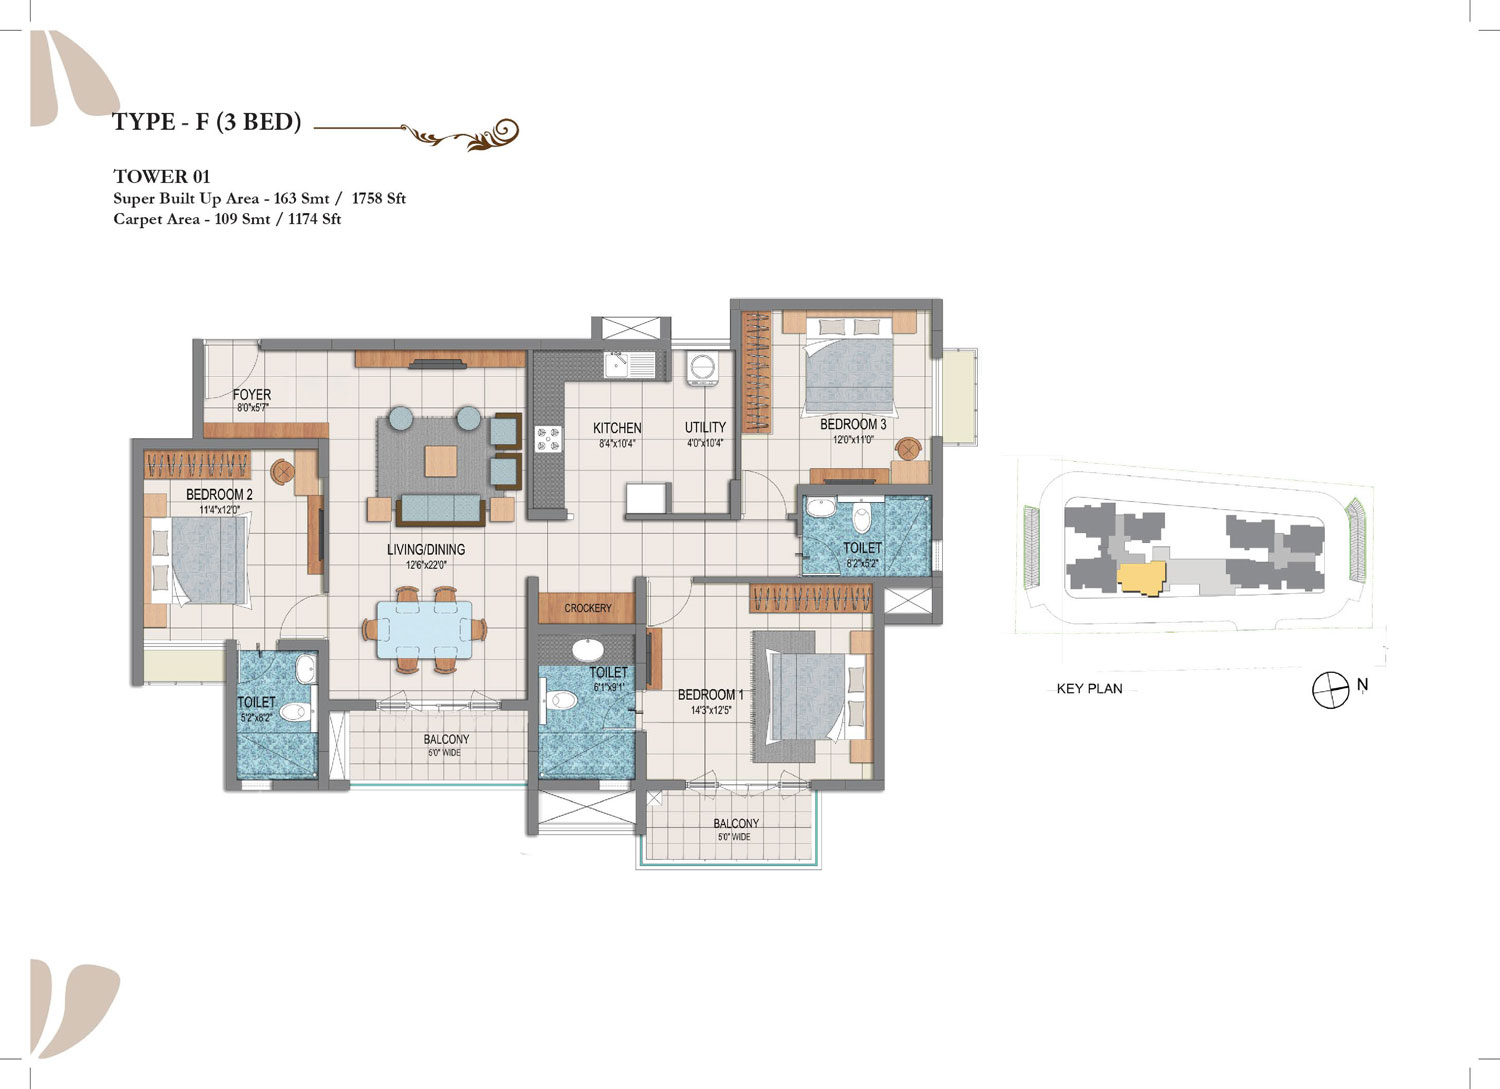 Type F - 3 Bed - 1758 Sq Ft